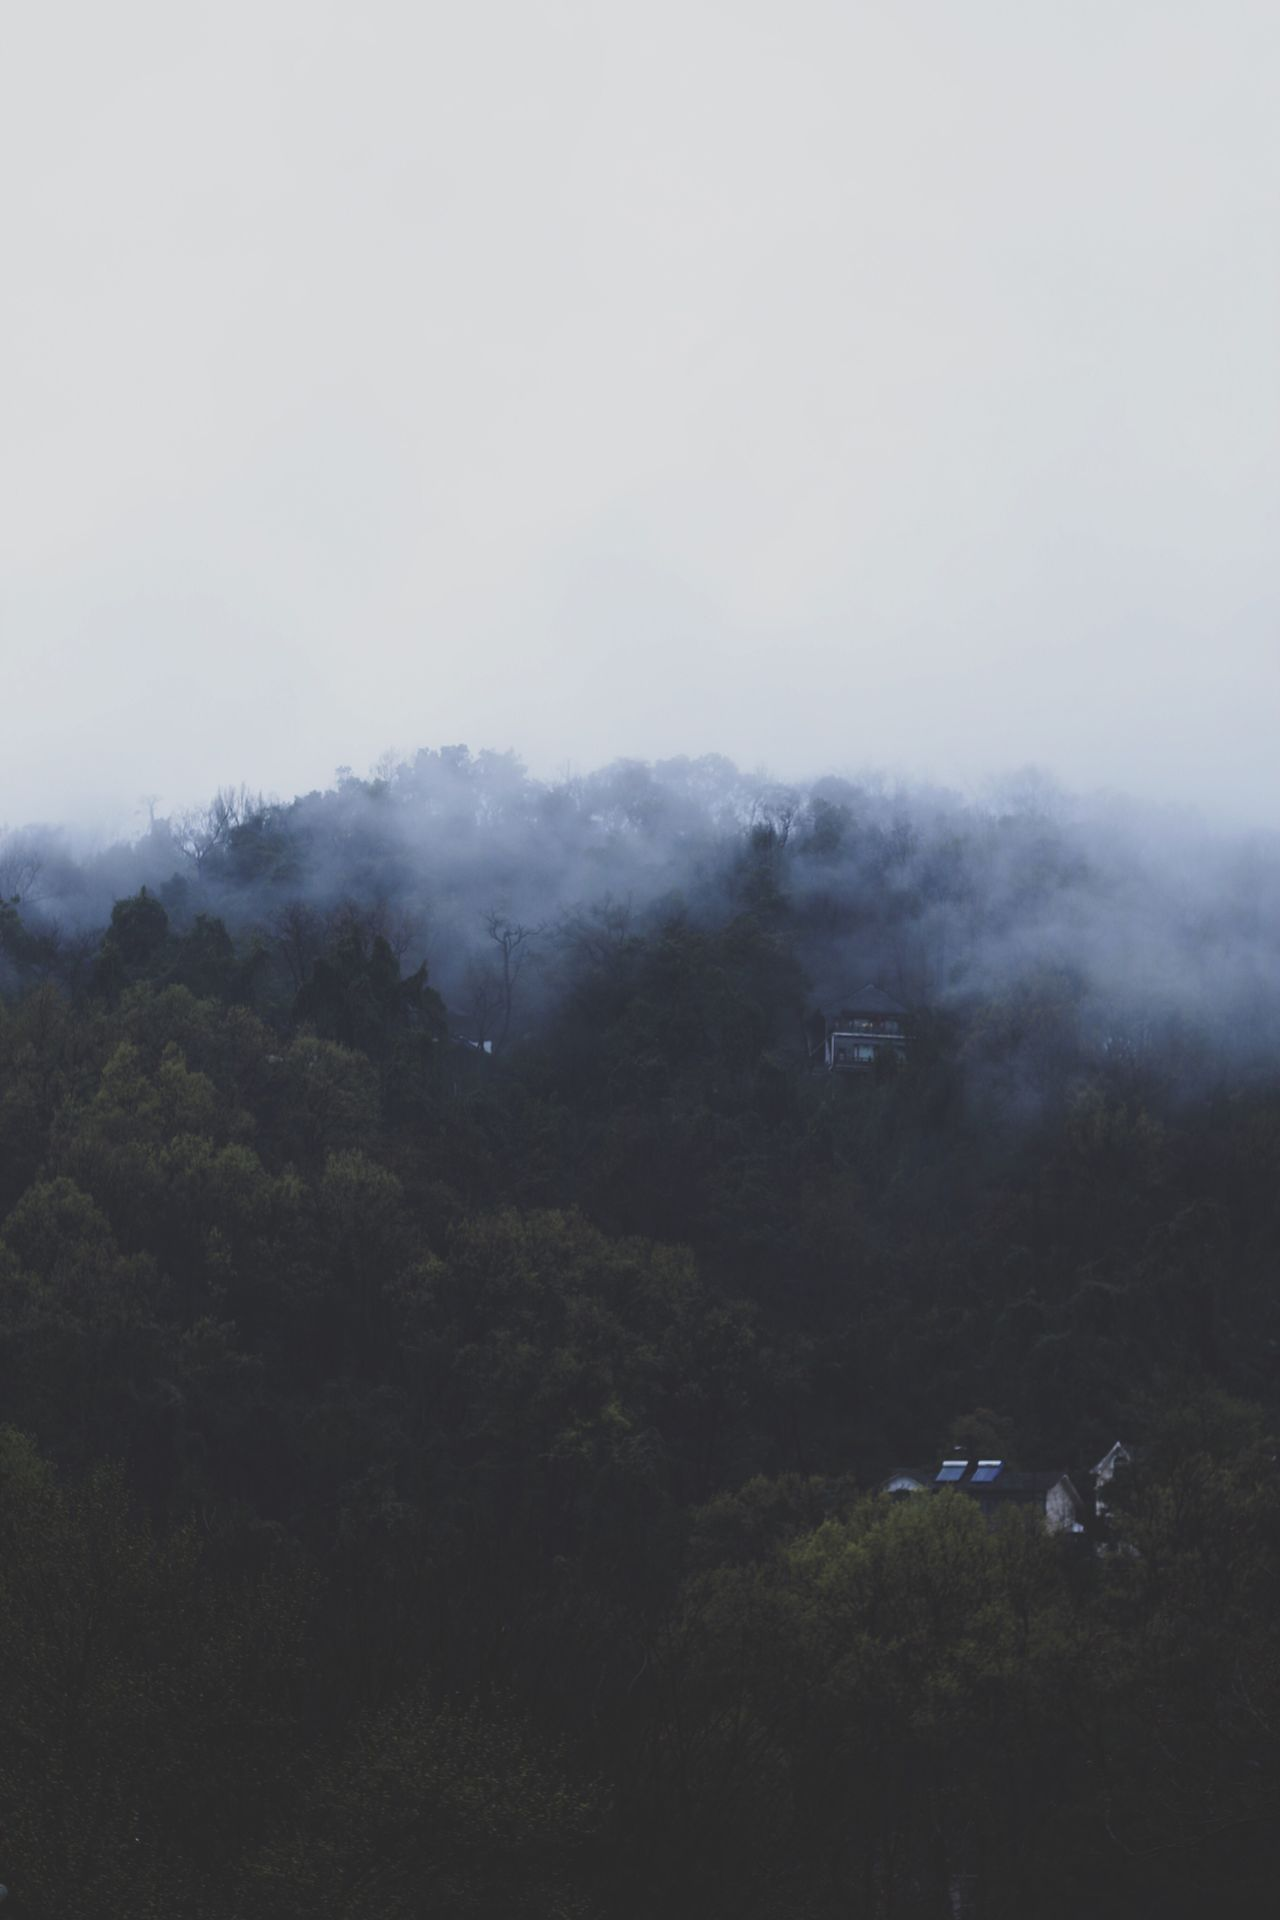 Fog Foggy Foggy Morning Foggy Day Fog_collection Foggy Landscape Hill Nature Tree Scenics Beauty In Nature Landscape Tranquil Scene Tranquility Outdoors No People Mountain Sky Day Hillstation Hills, Mountains, Sky, Clouds, Sun, River, Limpid, Blue, Earth EyeEmNewHere EyeEm Gallery From My Point Of View Beautiful Nature